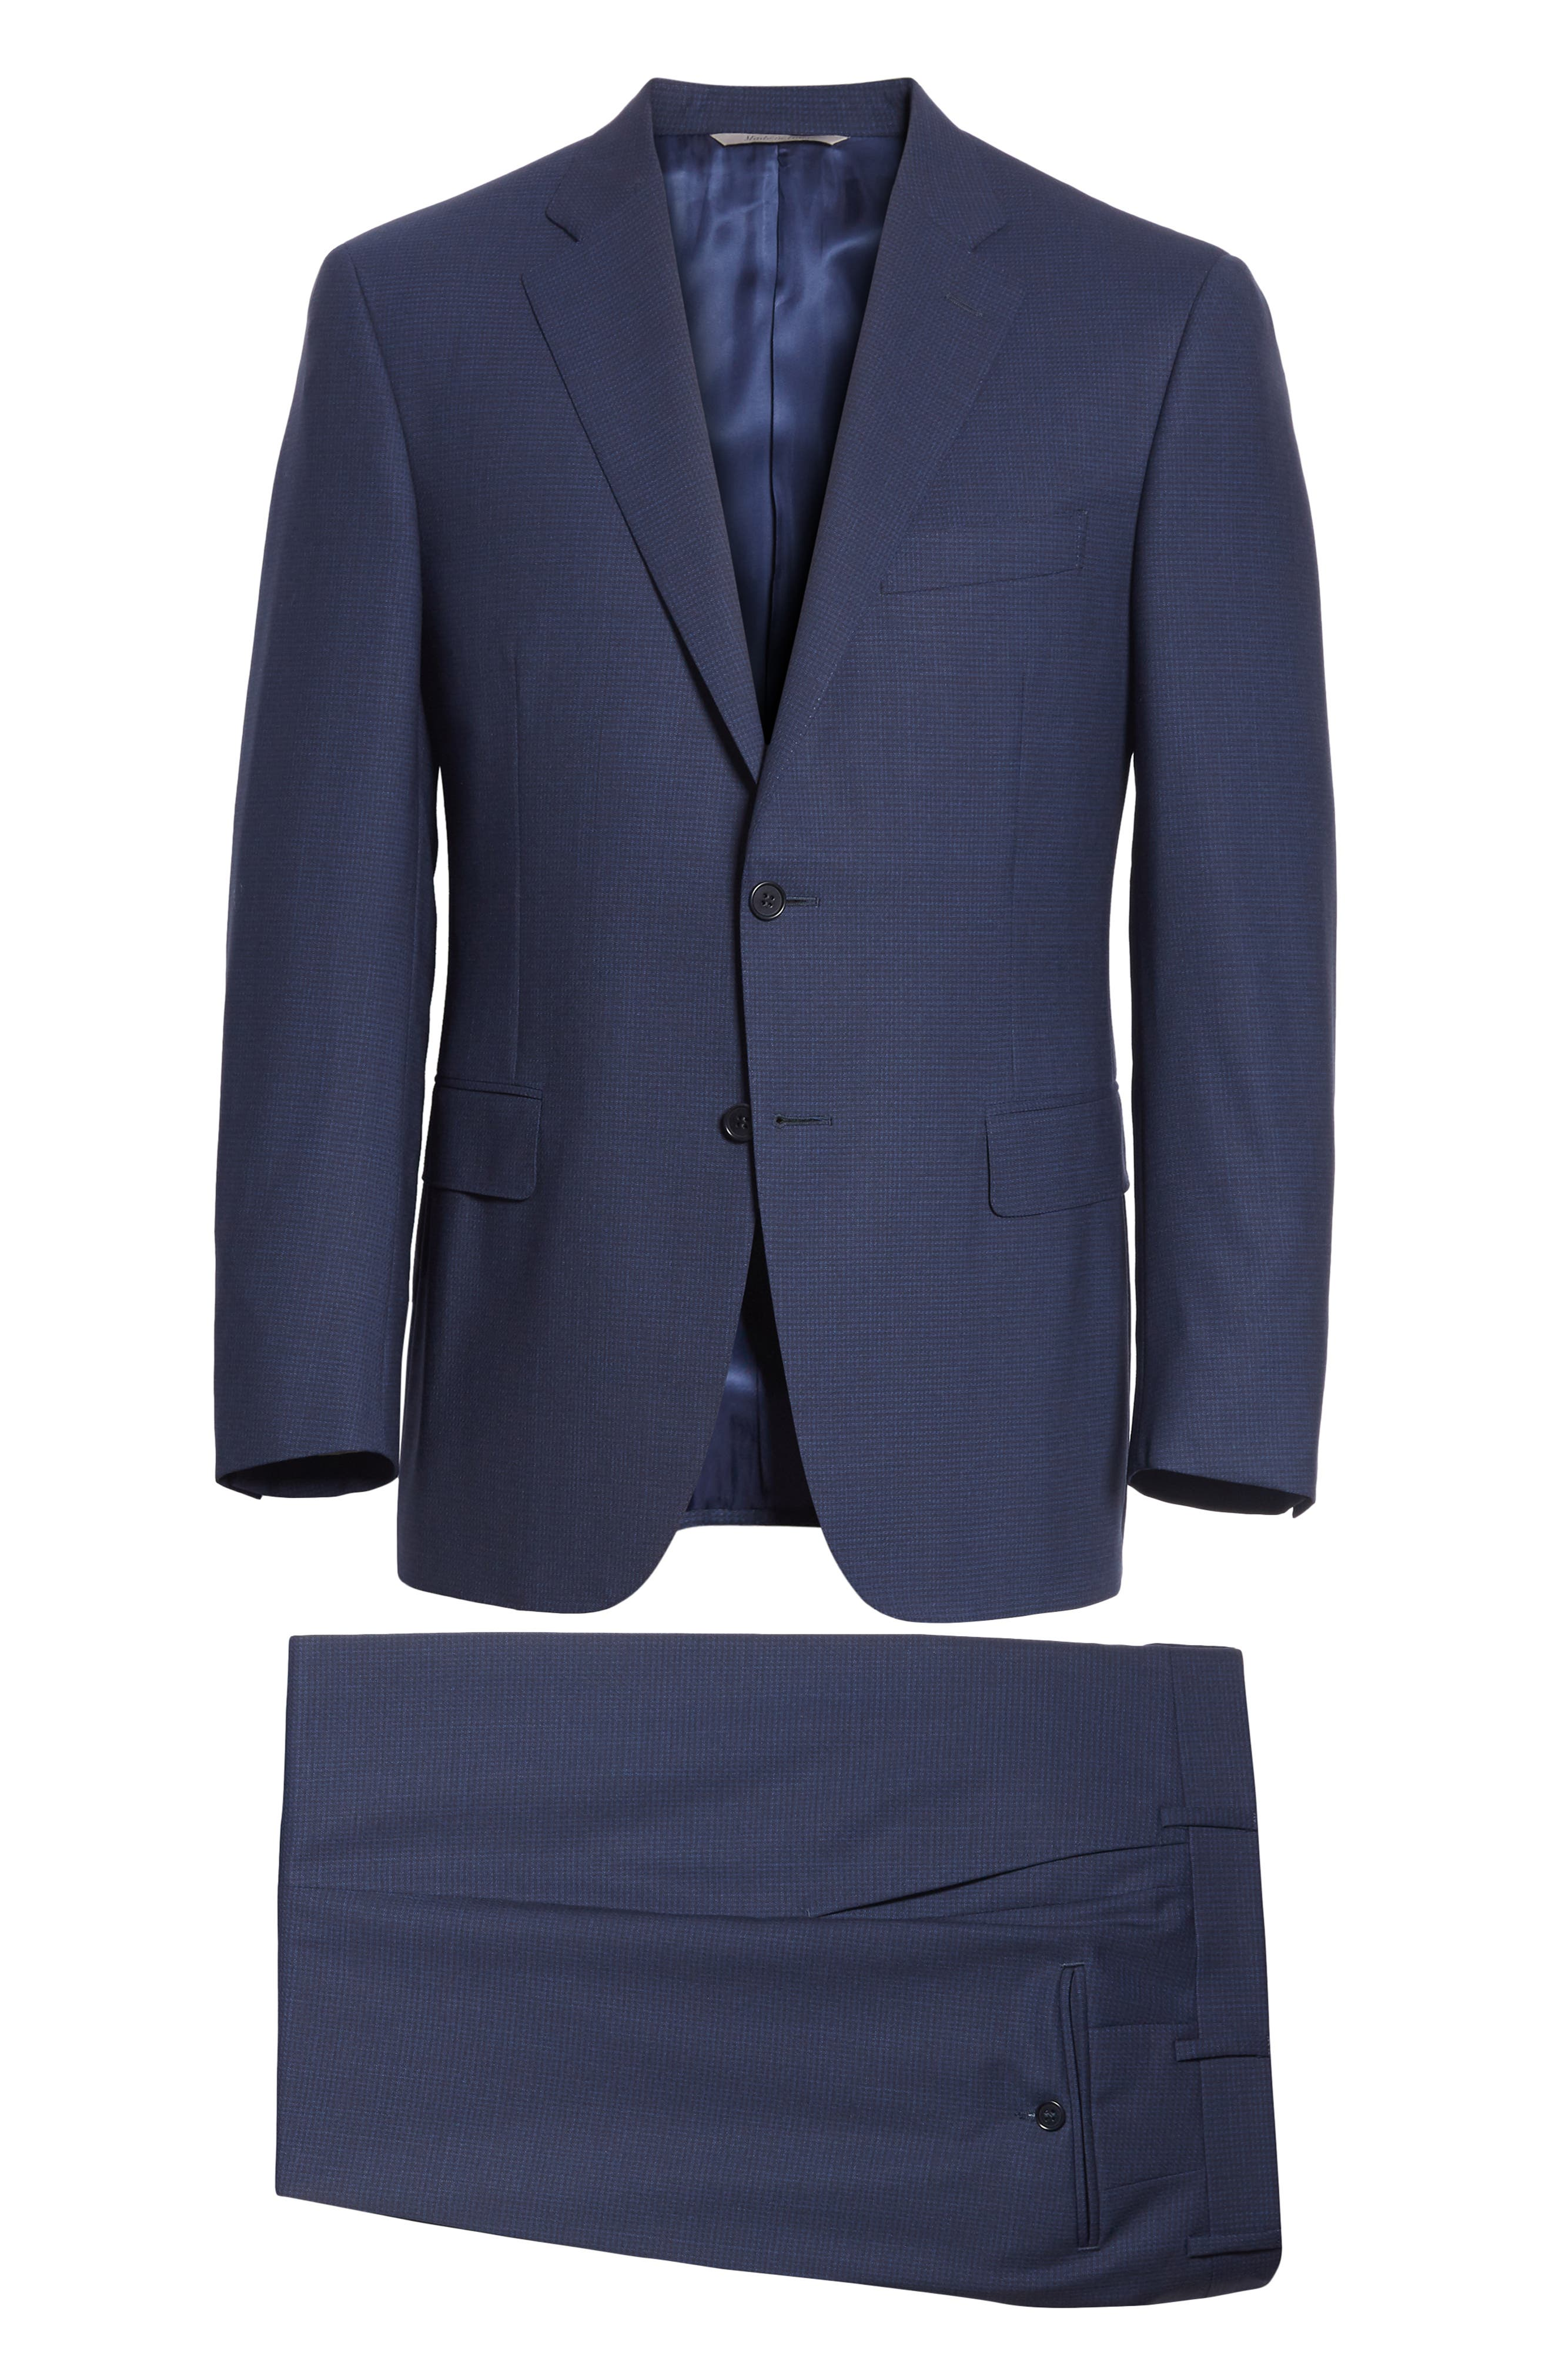 CANALI,                             Classic Fit Check Wool Suit,                             Alternate thumbnail 7, color,                             400